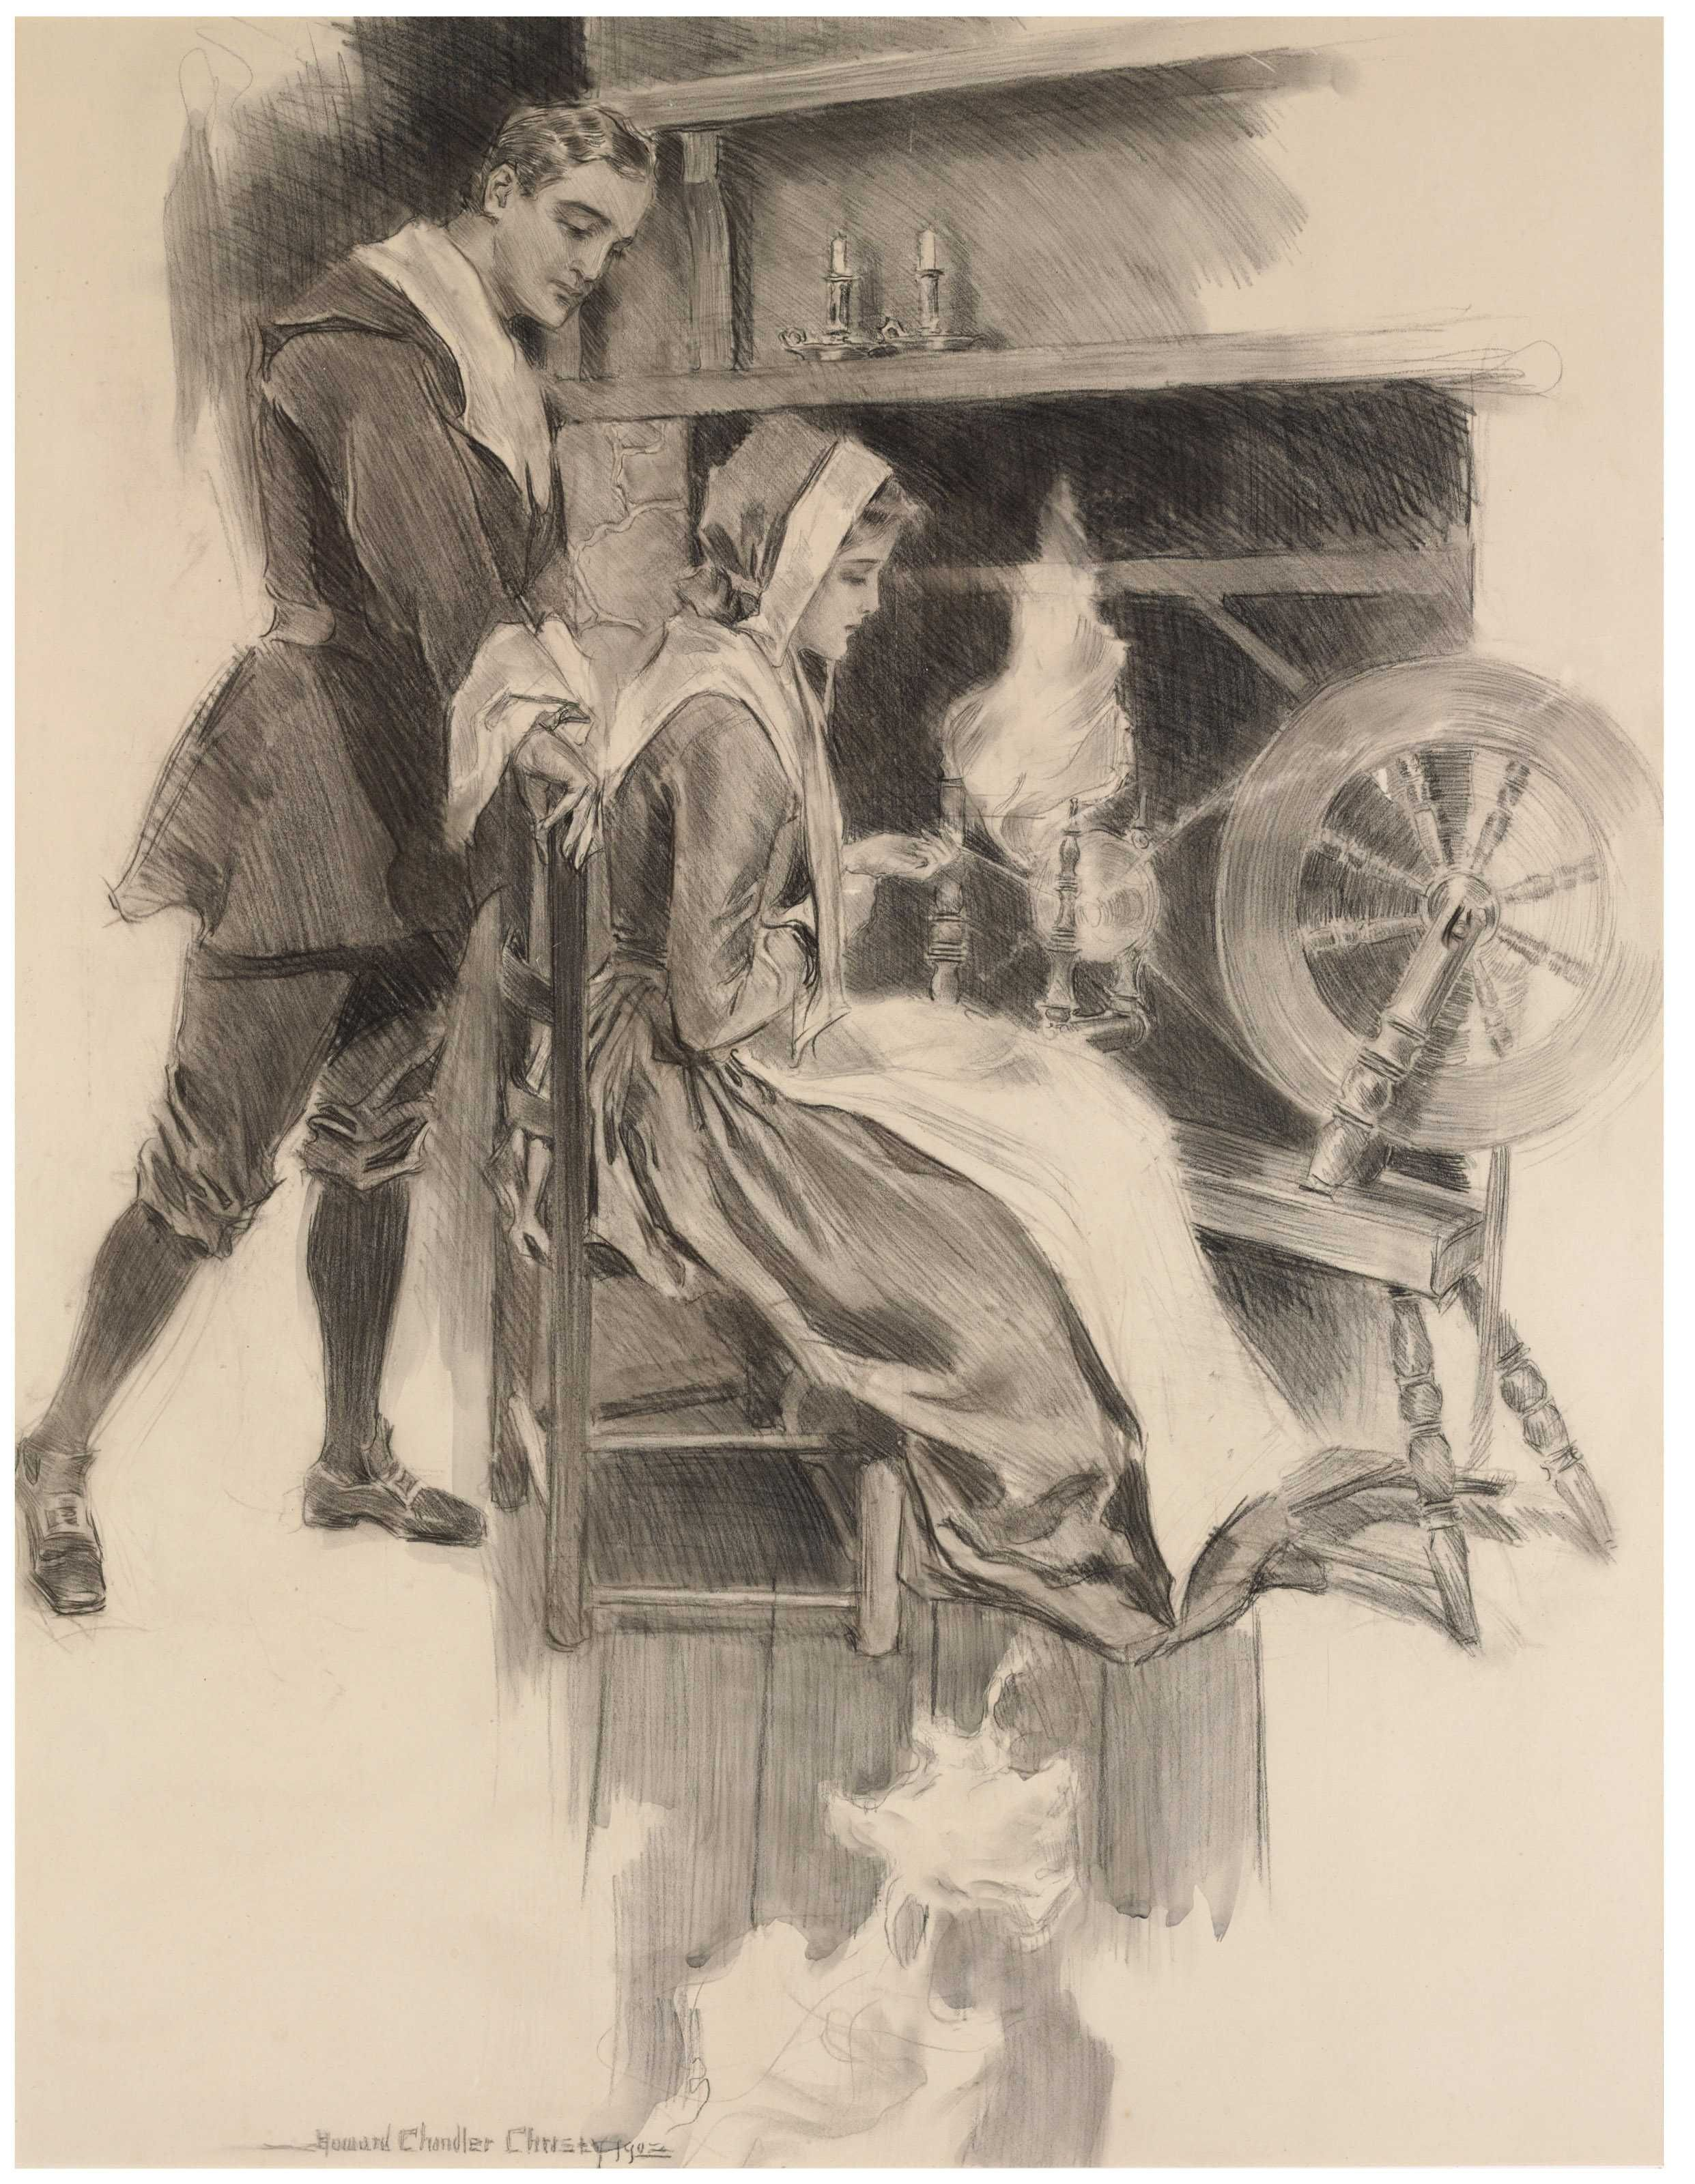 The Spinning Wheel from 'The Courtship of Miles Standish' signed and dated 'Howard Chandler Christy 1902' (pencil and wash on paperboard) Howard Chandler Christy . https://onlineonly.christies.com/s/america-illustrated-norman-rockwell-his-contemporaries/spinning-wheel-the-courtship-miles-standish-14/22441